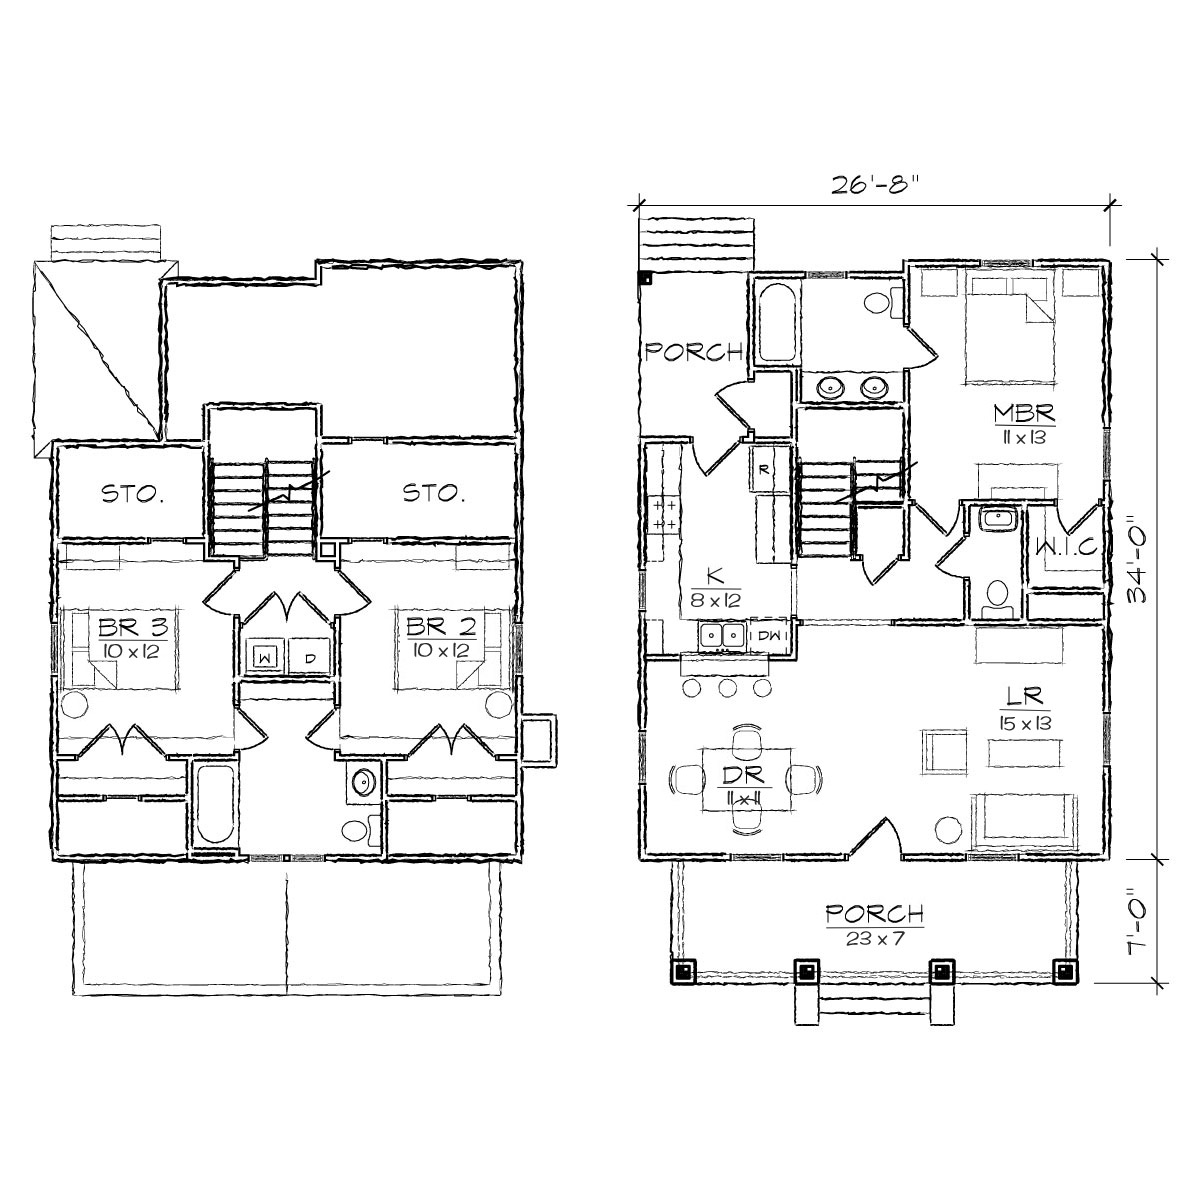 Bungalow house floor plans with dormers robinson bungalow for Dormer floor plans